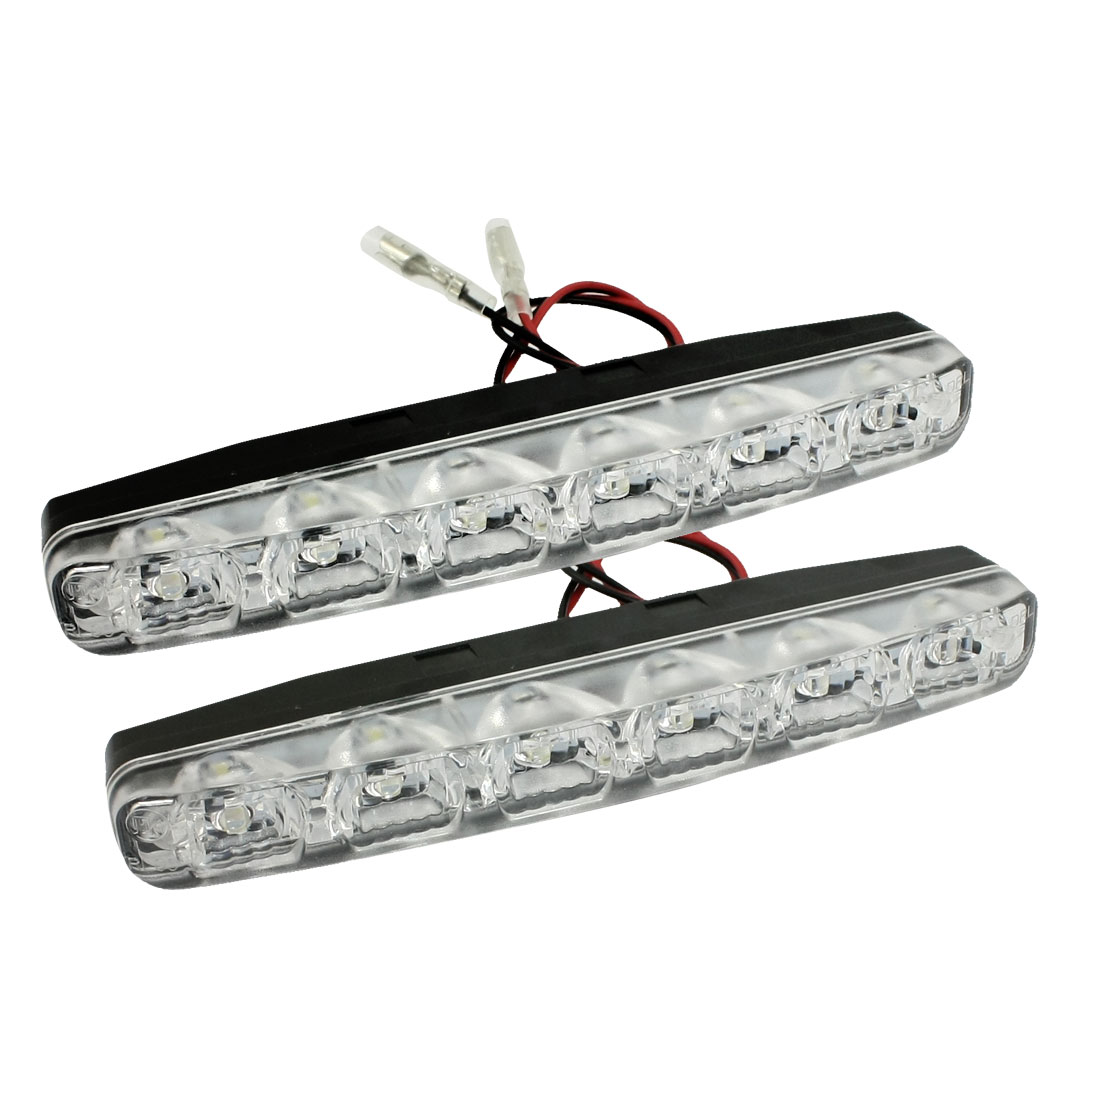 Unique Bargains Unique Bargains 2 Pcs 6  White DRL Daytime Running Lamp Car Fog Light Headlamp Wire